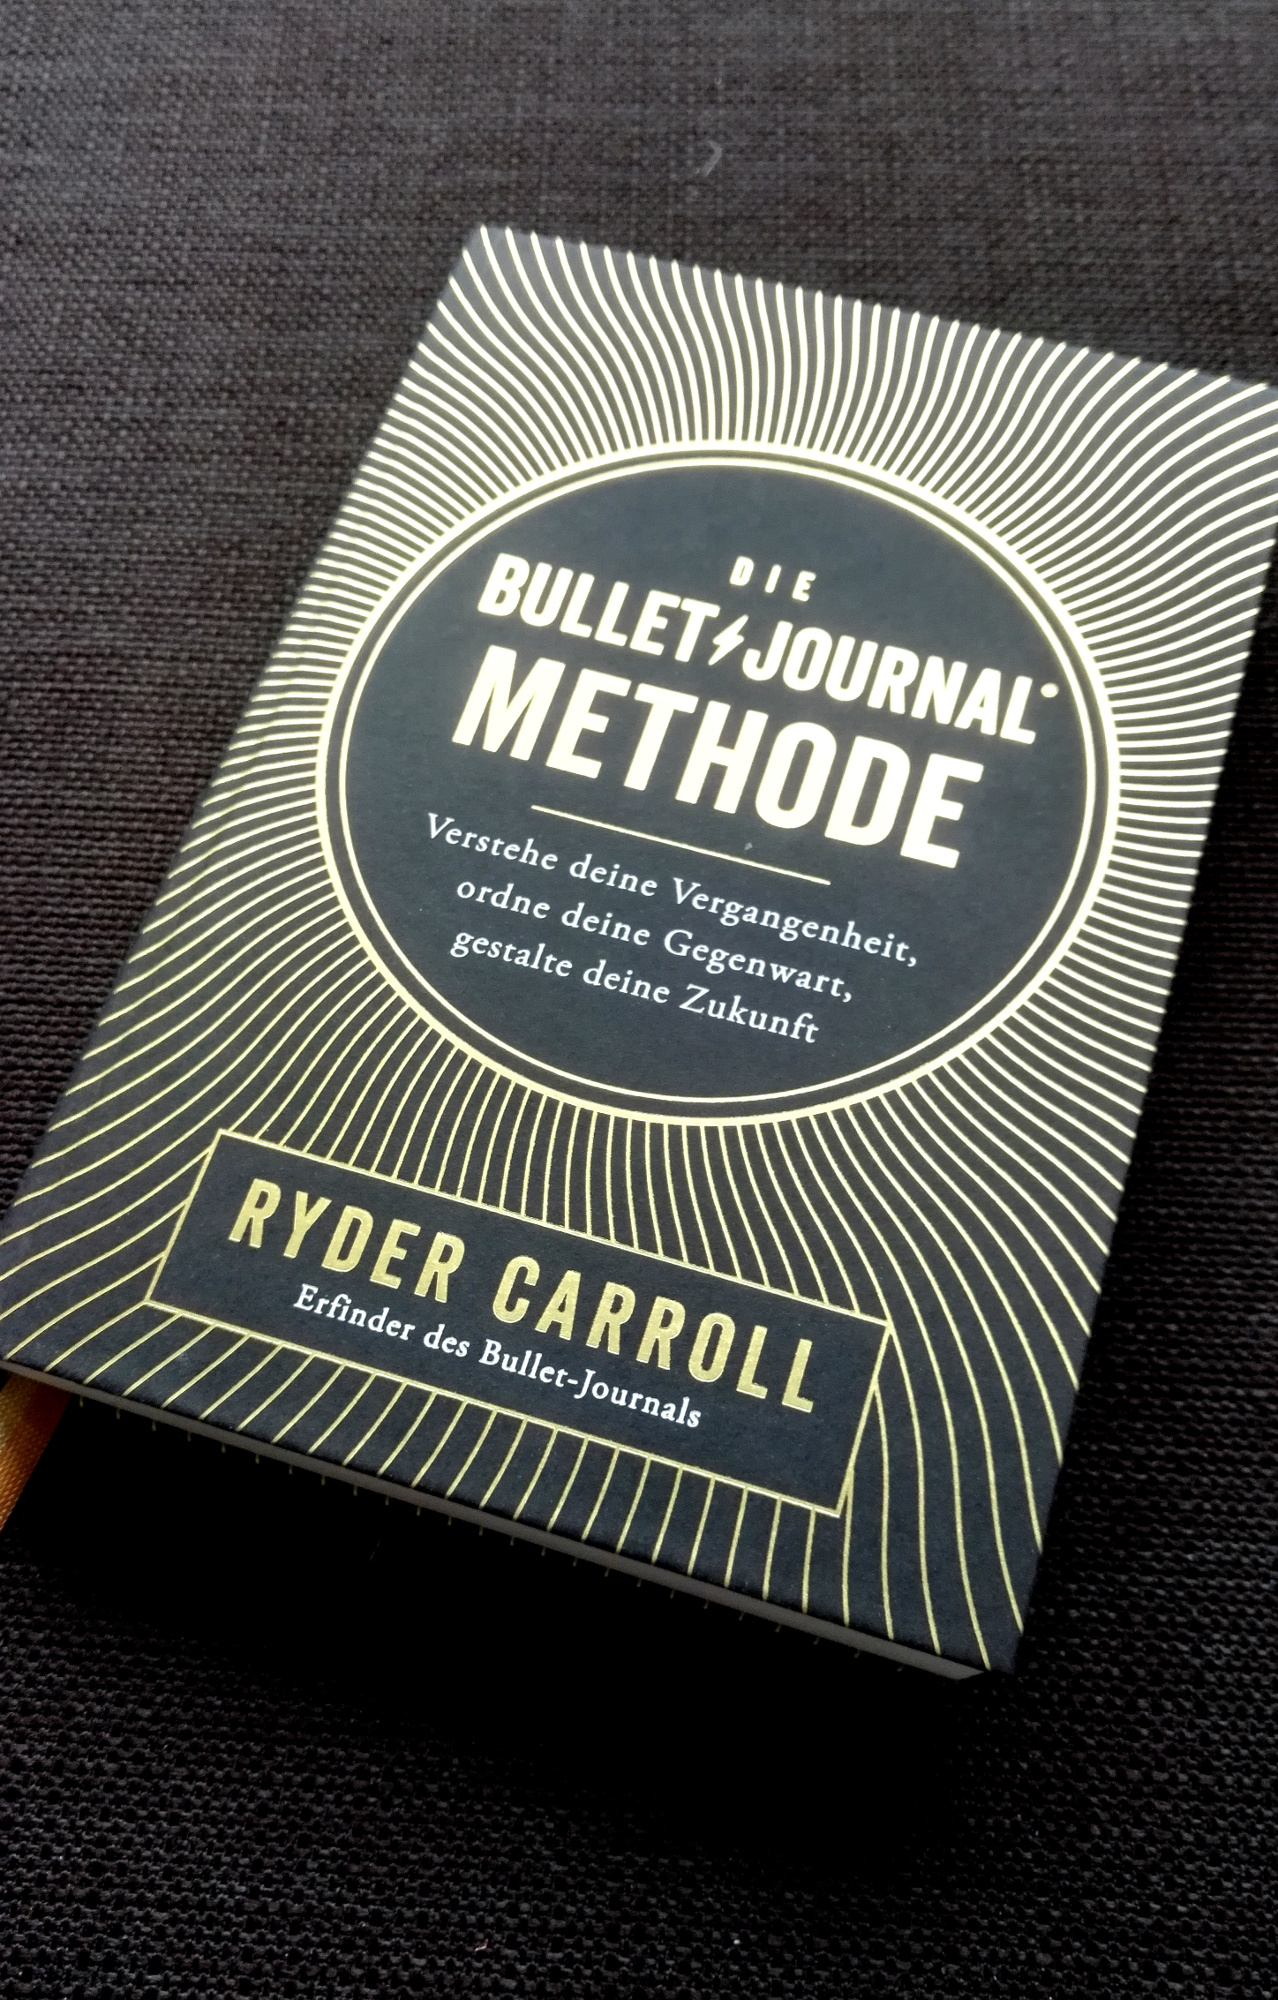 Ryder Carroll – Die Bullet Journal Methode